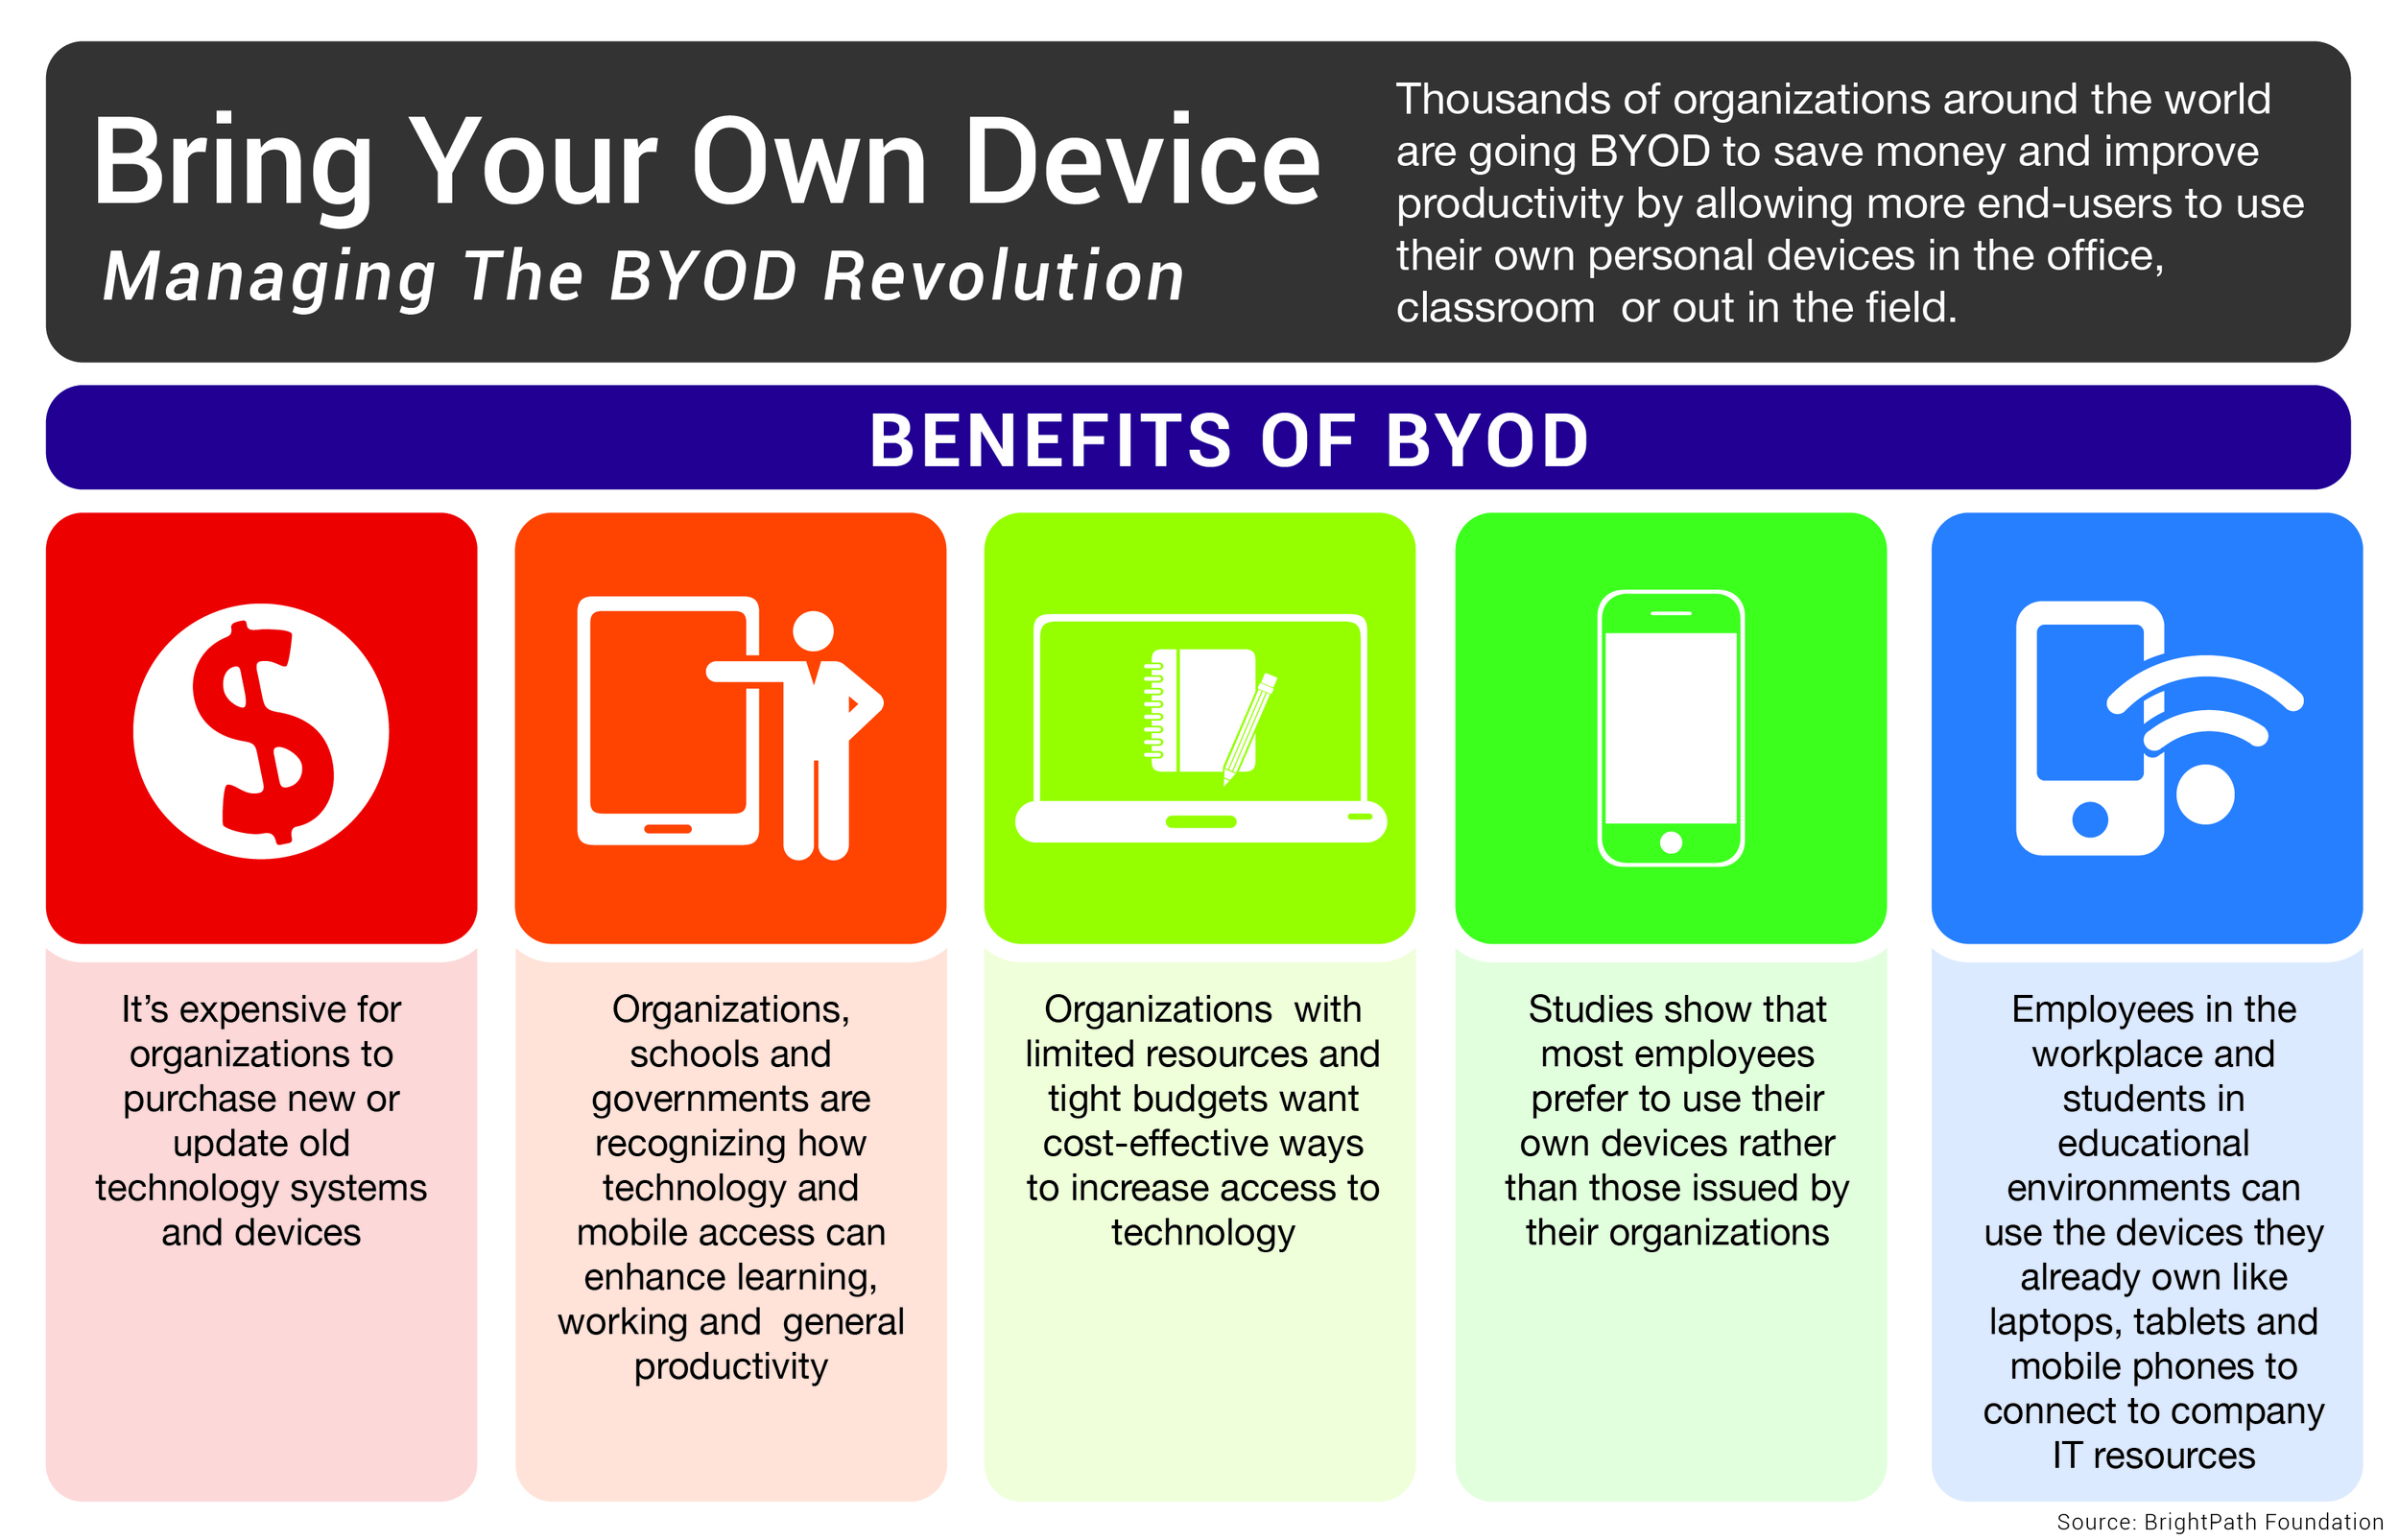 Bring Your Own Device Benefits